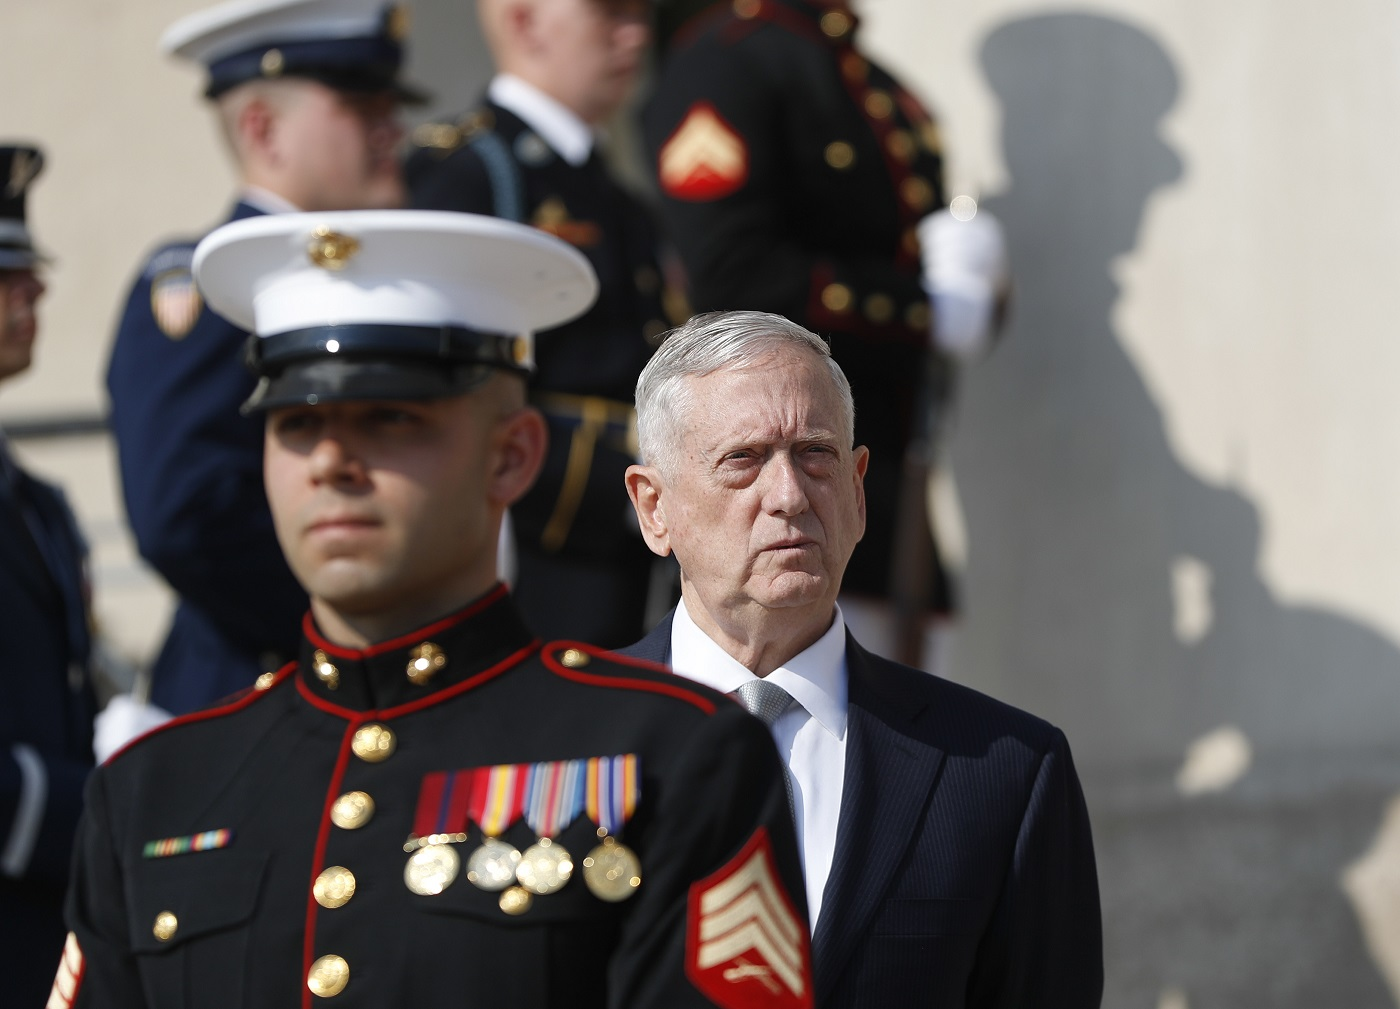 "FILE - In this July 10, 2017, file photo, Defense Secretary Jim Mattis waits before an honor cordon at the Pentagon. The Trump administration is still sorting out ""the big ideas"" for a new Afghanistan strategy, beyond troop levels and other military details, Defense Secretary Jim Mattis said Friday, July 21, 2017. (AP Photo/Pablo Martinez Monsivais, File)"